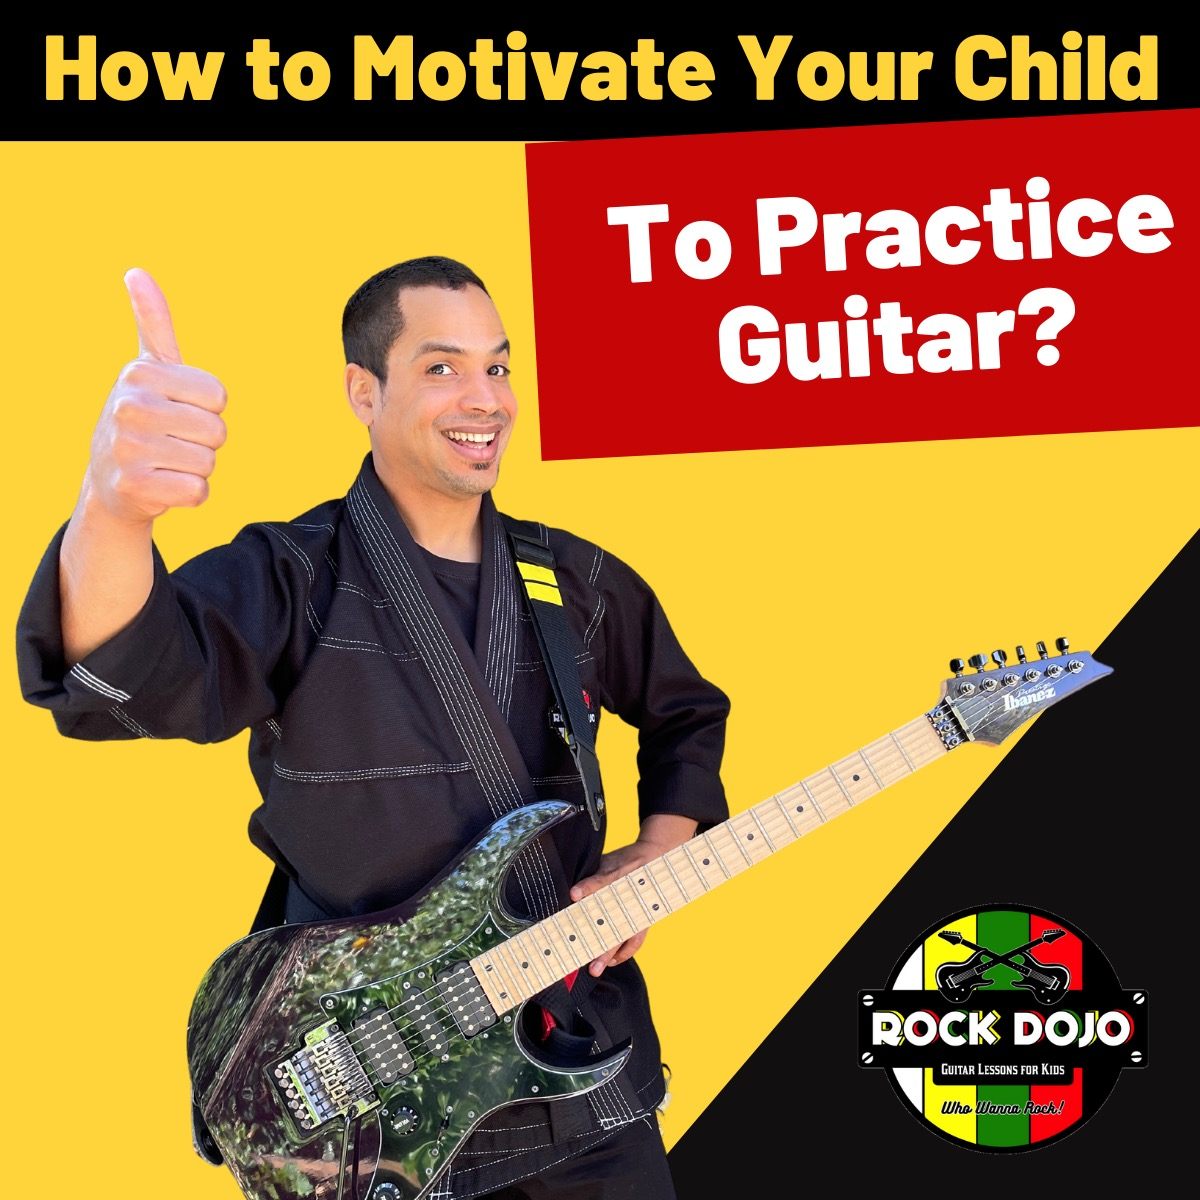 How to Motivate Your Child to Practice Guitar